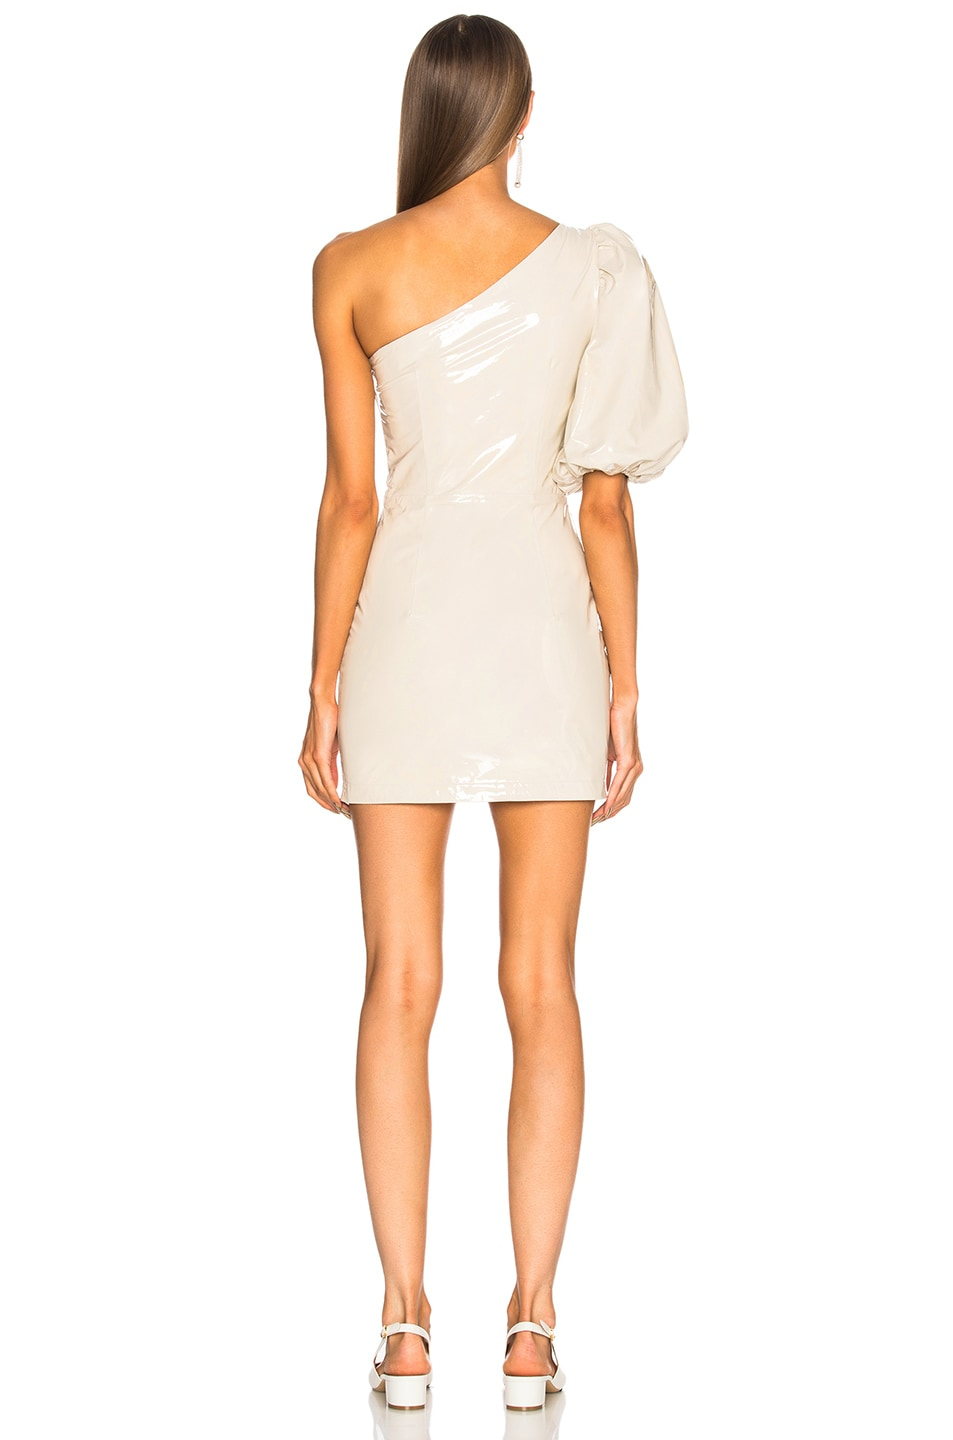 0f24a7c197 Image 4 of Zeynep Arcay One Shoulder Patent Leather Dress in Off White